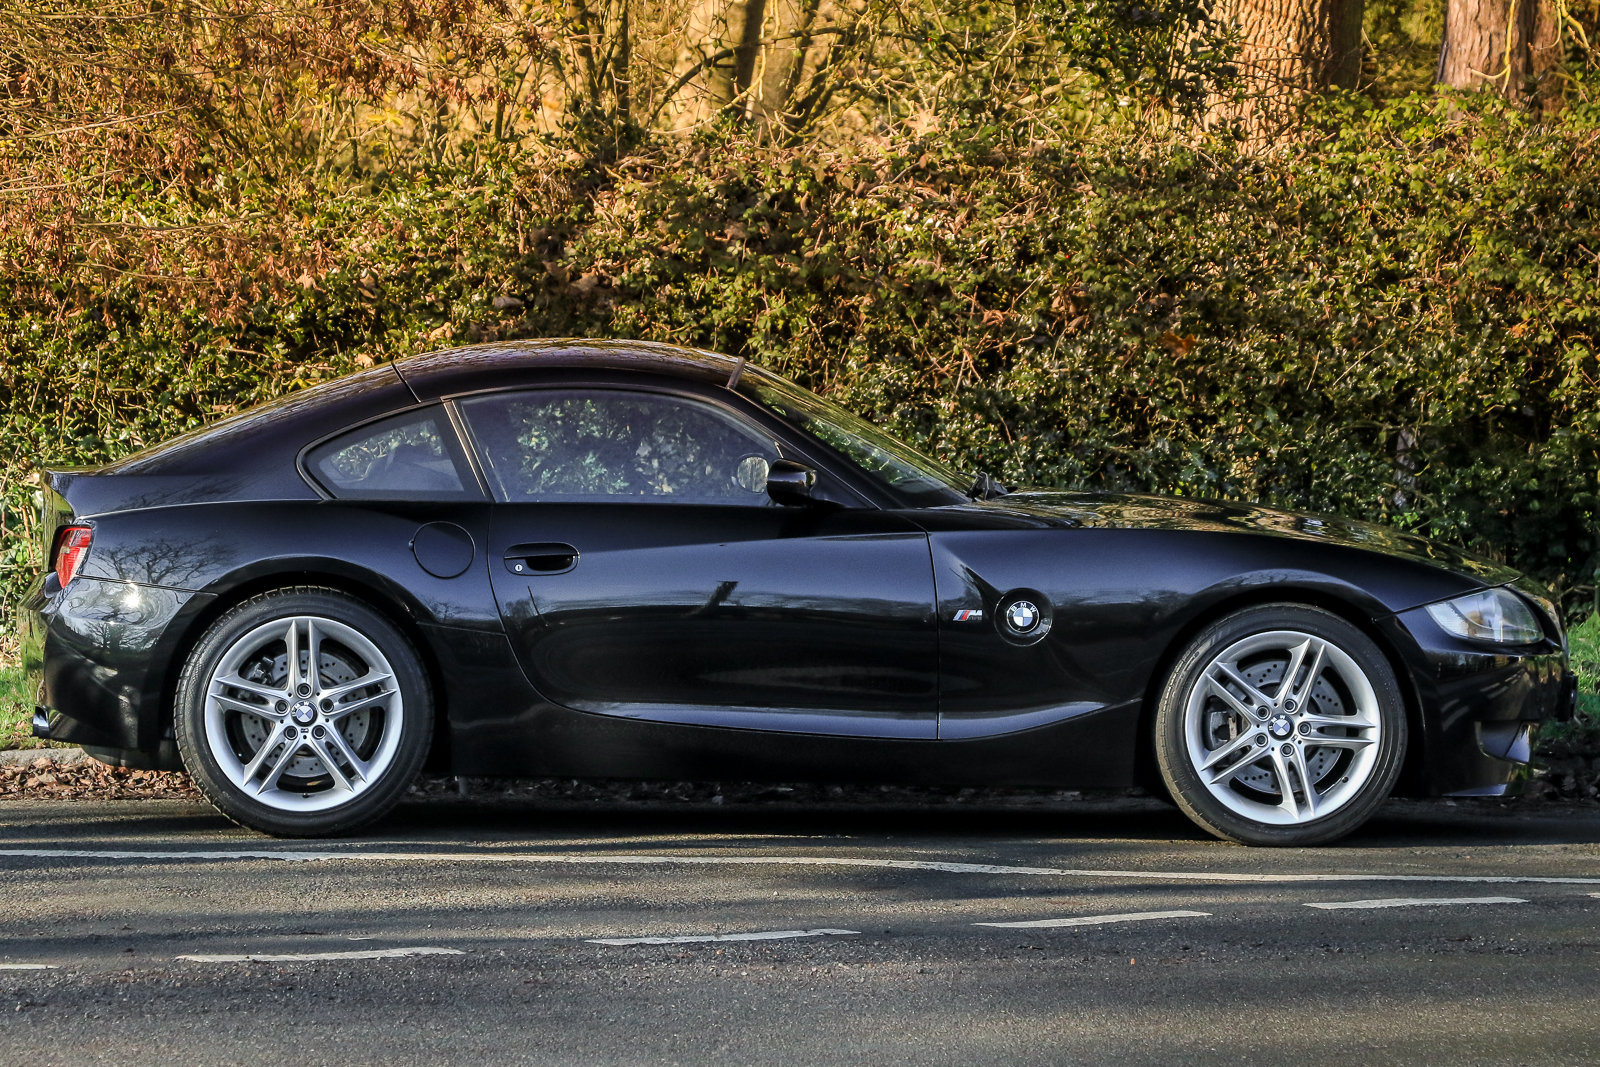 2006 BMW Z4M Coupe Sapphire Black with Inspection II Service For Sale (picture 3 of 6)